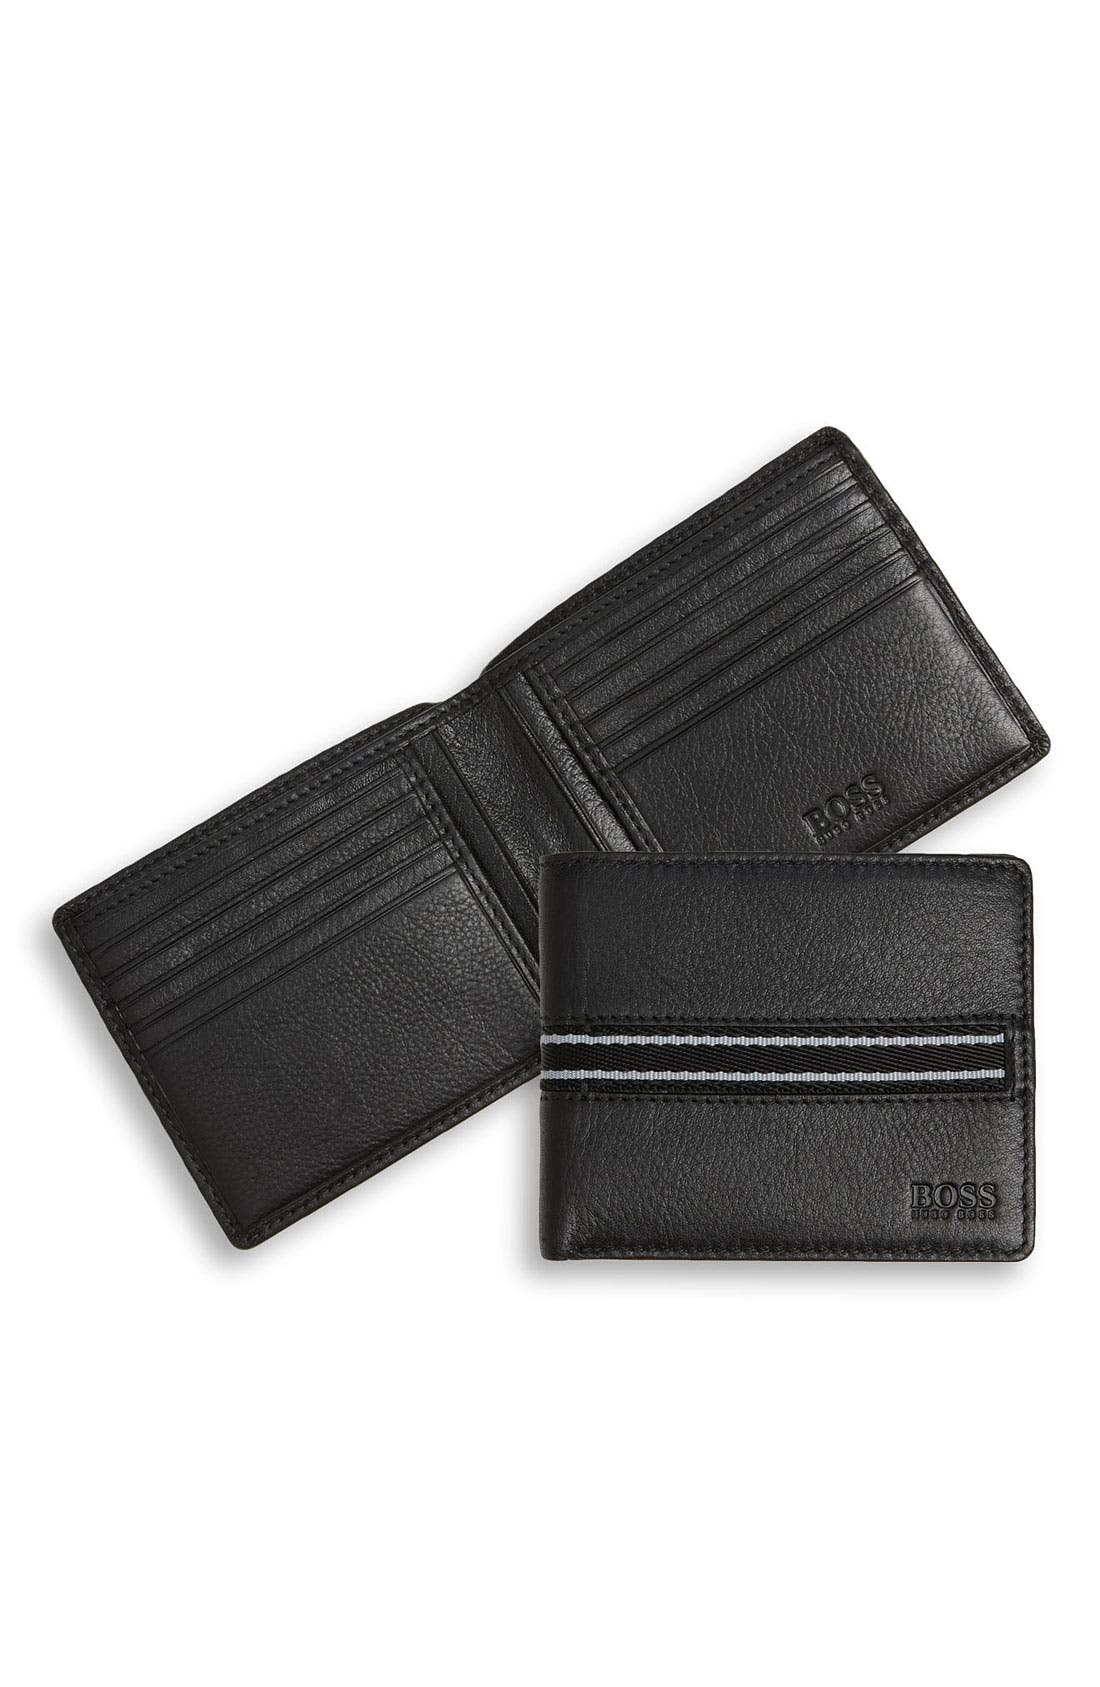 Main Image - BOSS HUGO BOSS 'Starskie' Wallet